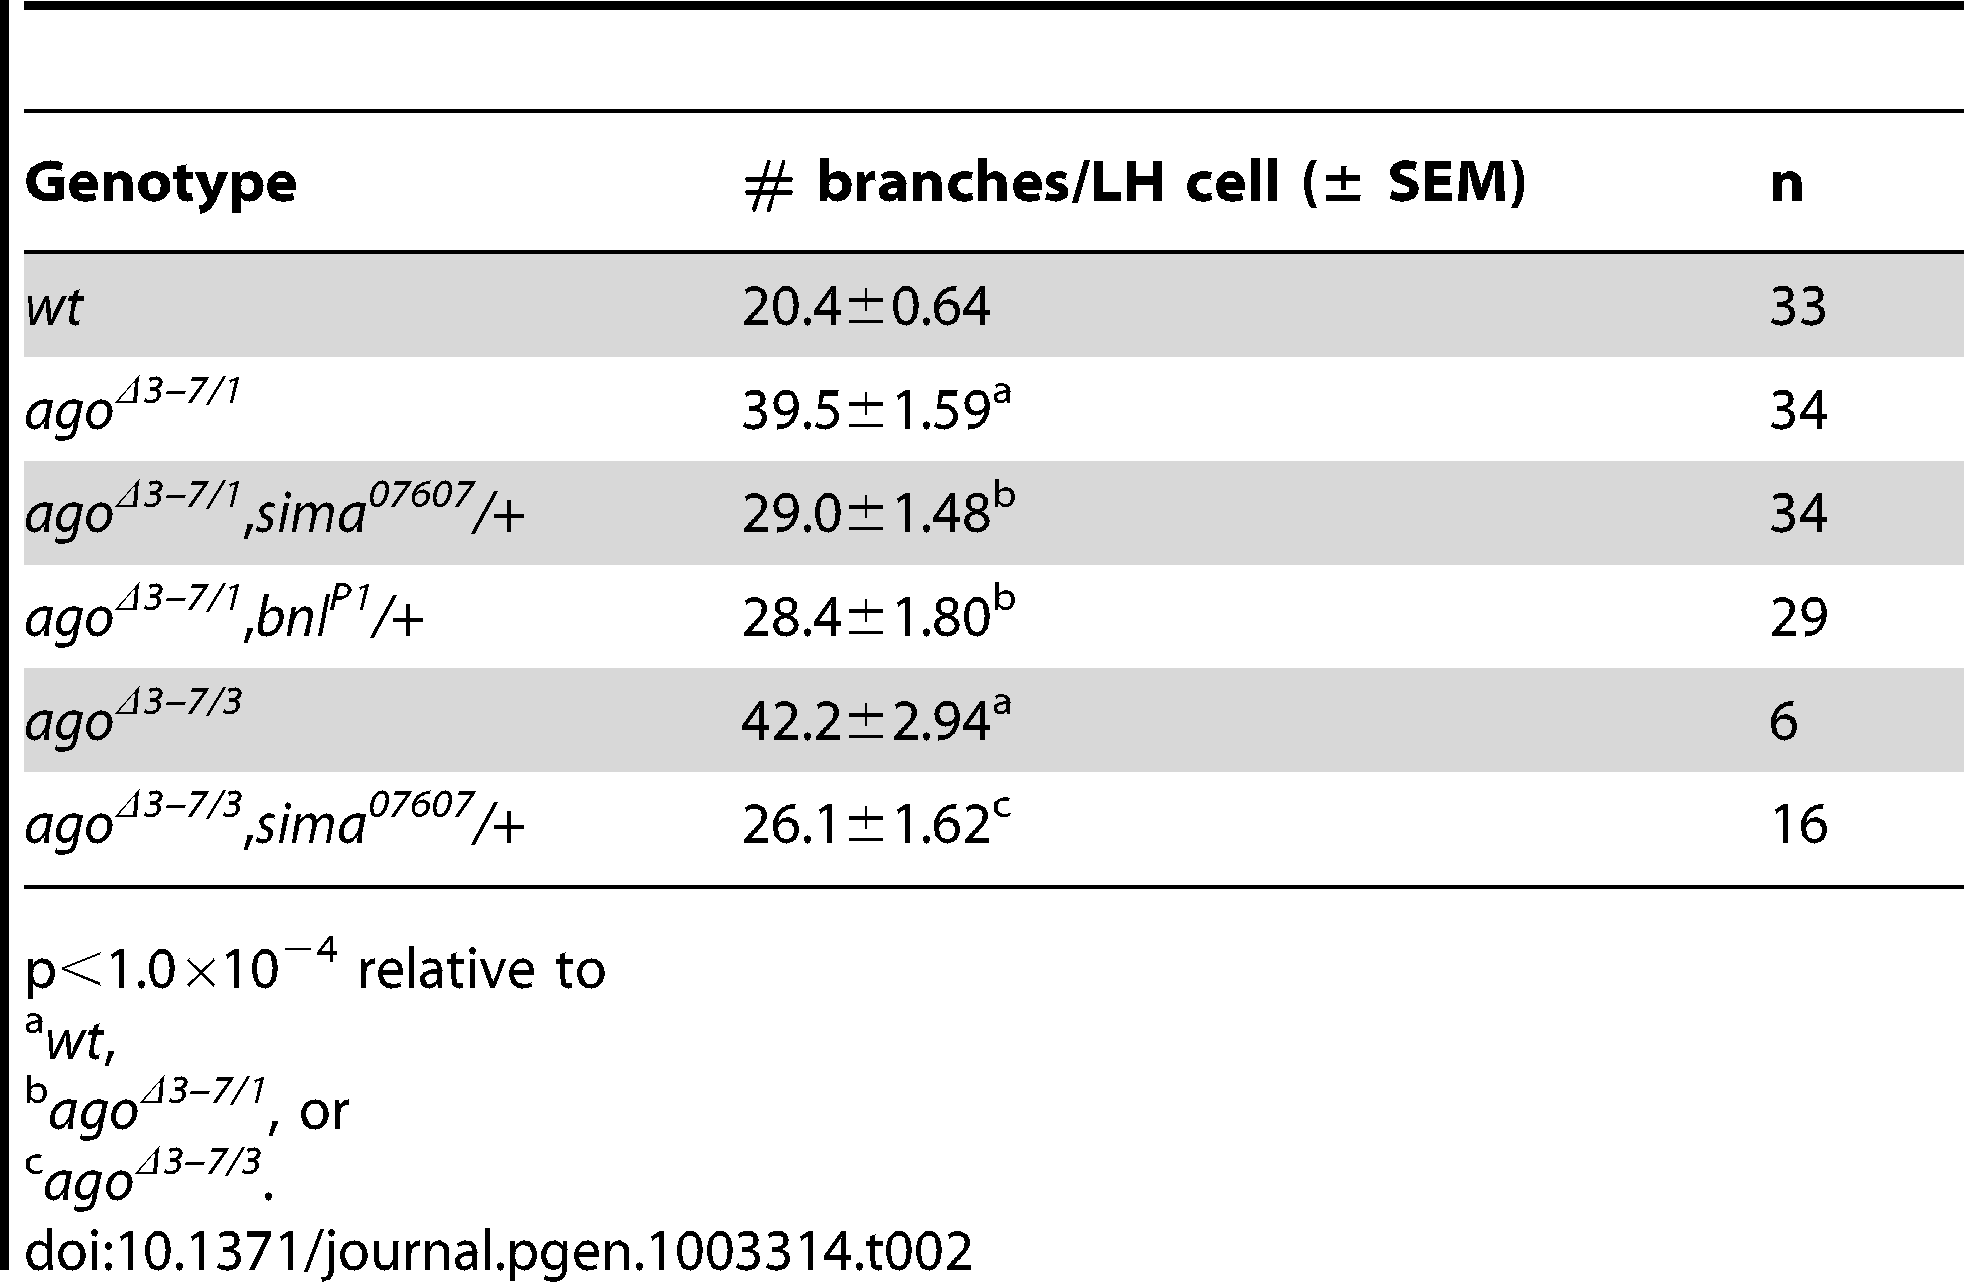 Number of tracheal terminal branches per LH cell.